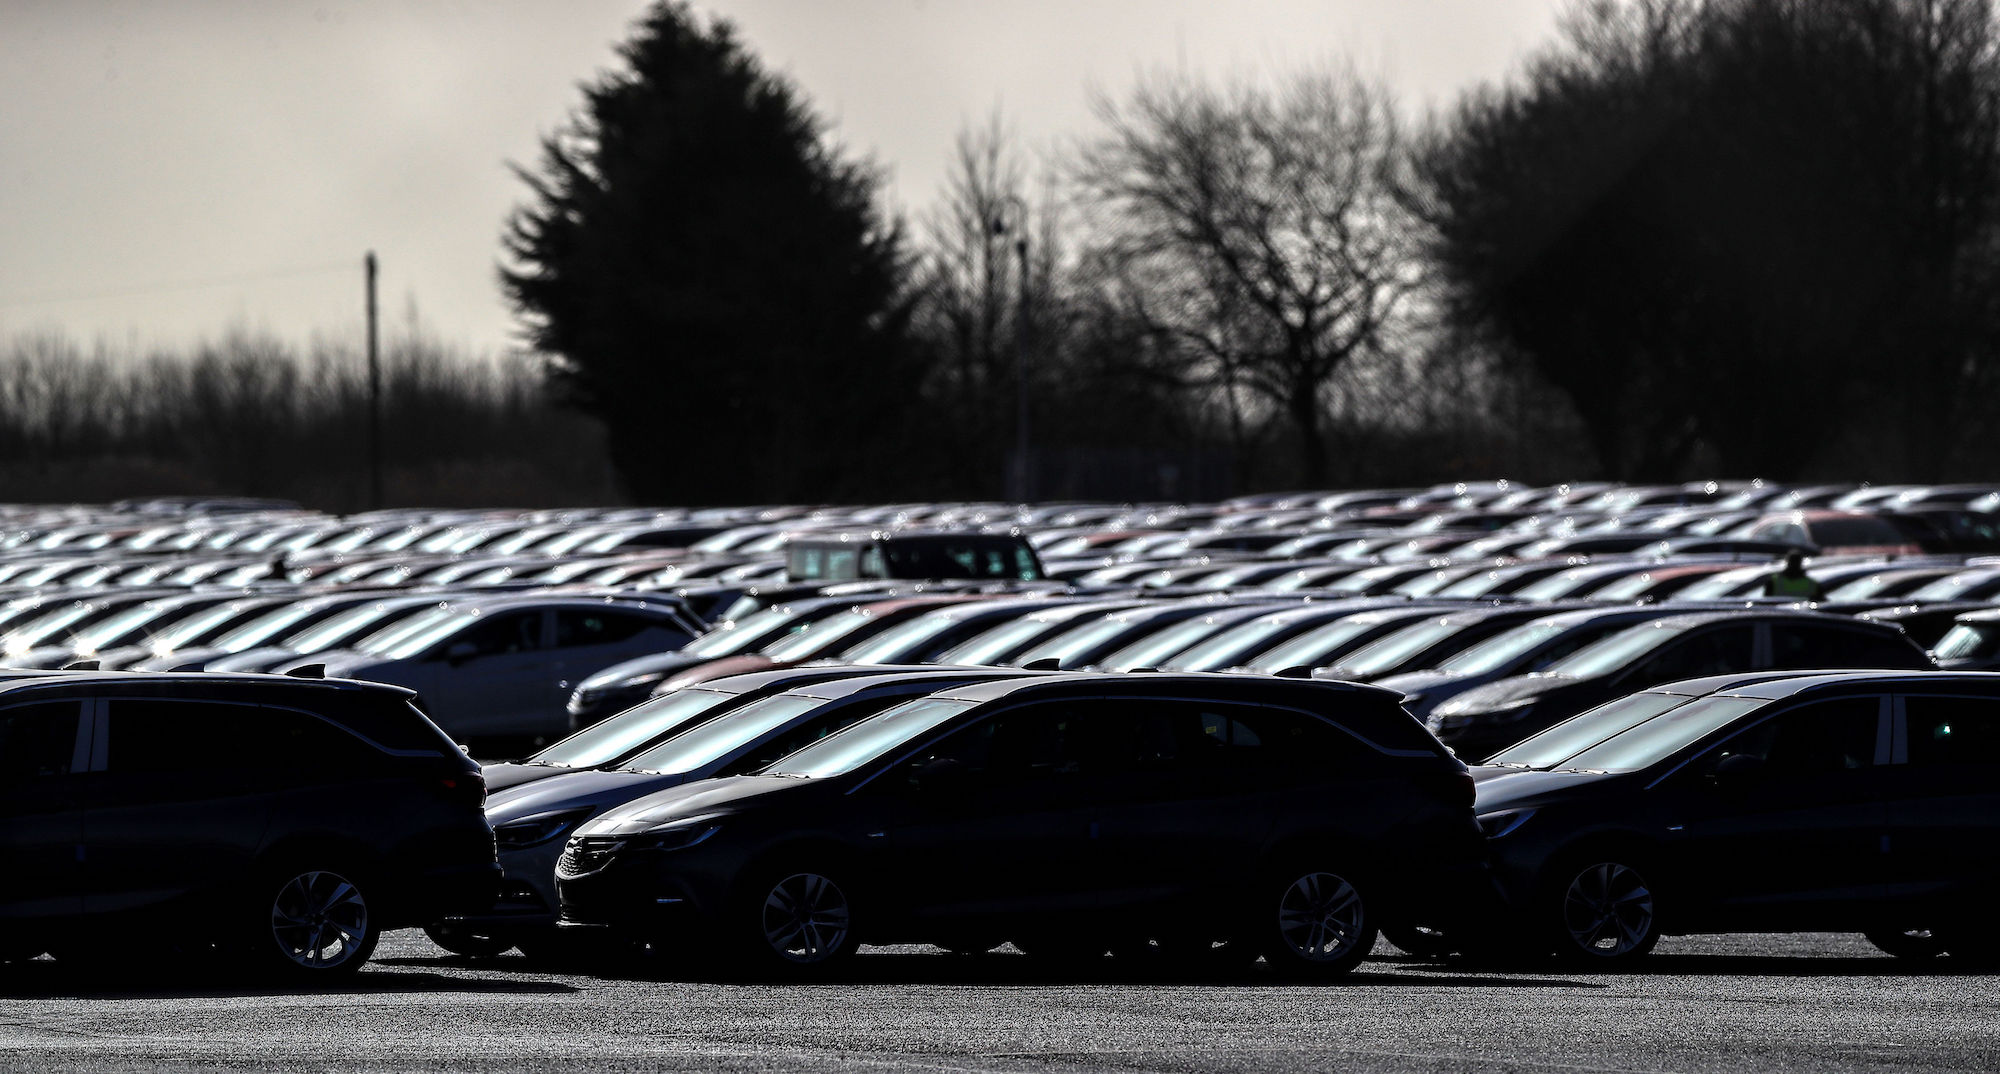 Used vehicle sales in the United Kingdom fall again for Q3